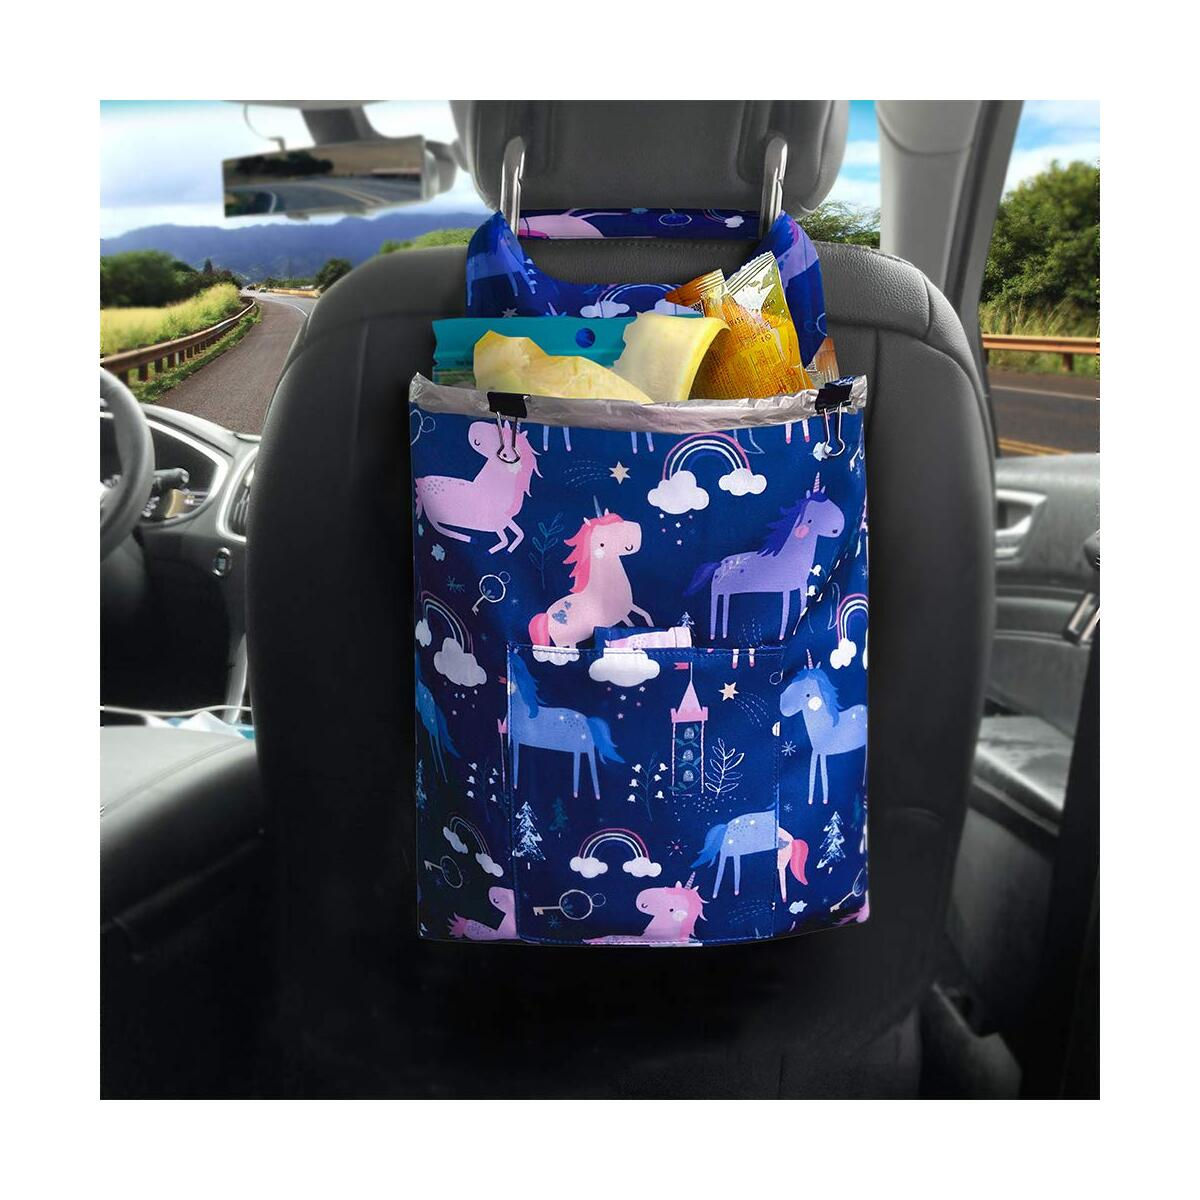 Car Trash Bag Cute Hanging Front Seat, LENDOUBLE Waterproof Travel Garbage Can for Auto with Small Pockets Container, Foldable Vehicle Waste Bin for Back Seat, SUV Console Velcro Litter Organizer (Variation)